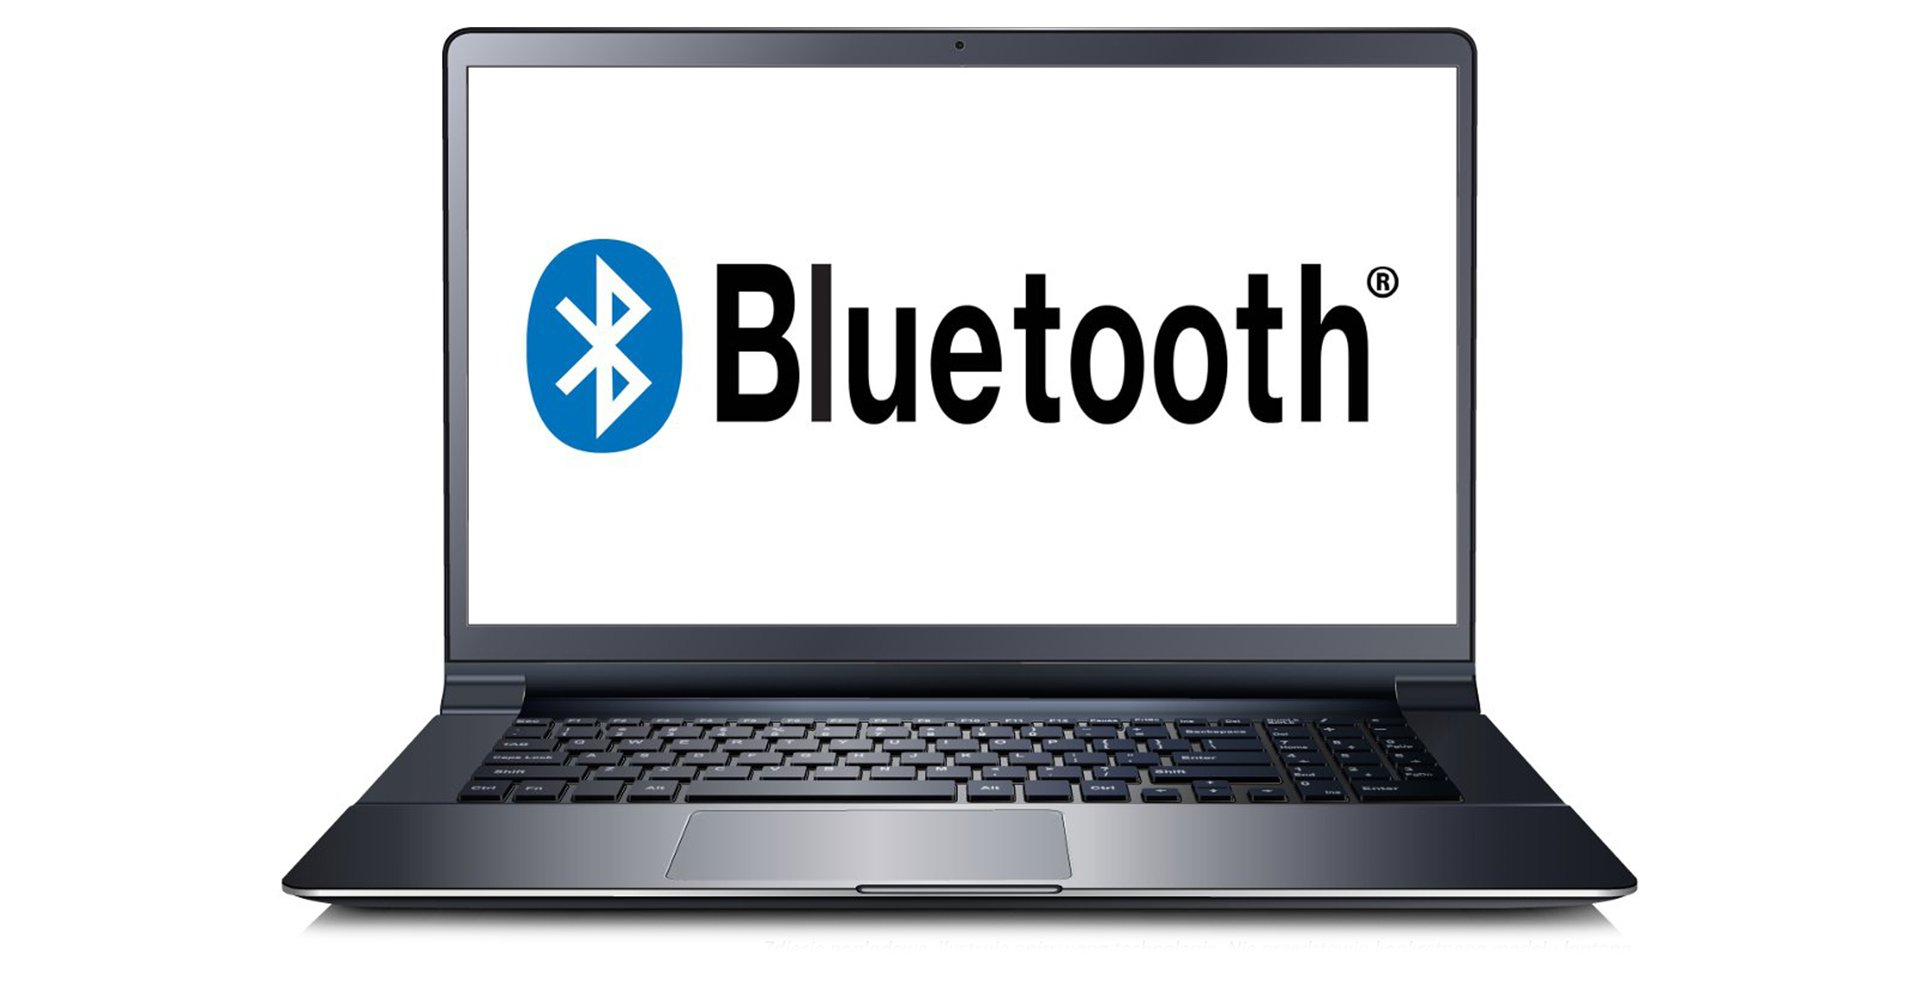 Toshiba Satellite Pro A50-C-207 (PS575E-0U102PPL)                             Bluetooth